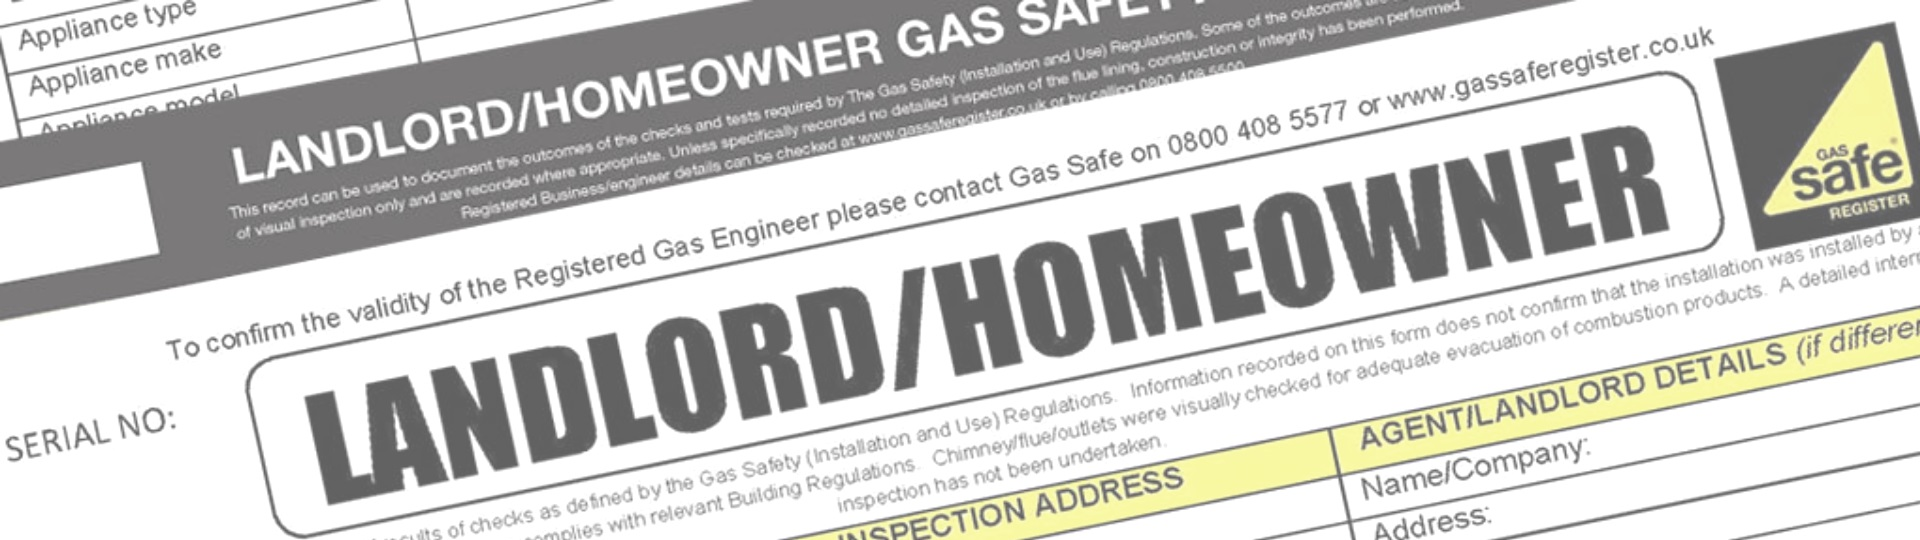 Gas Saftey Certificates Eastville